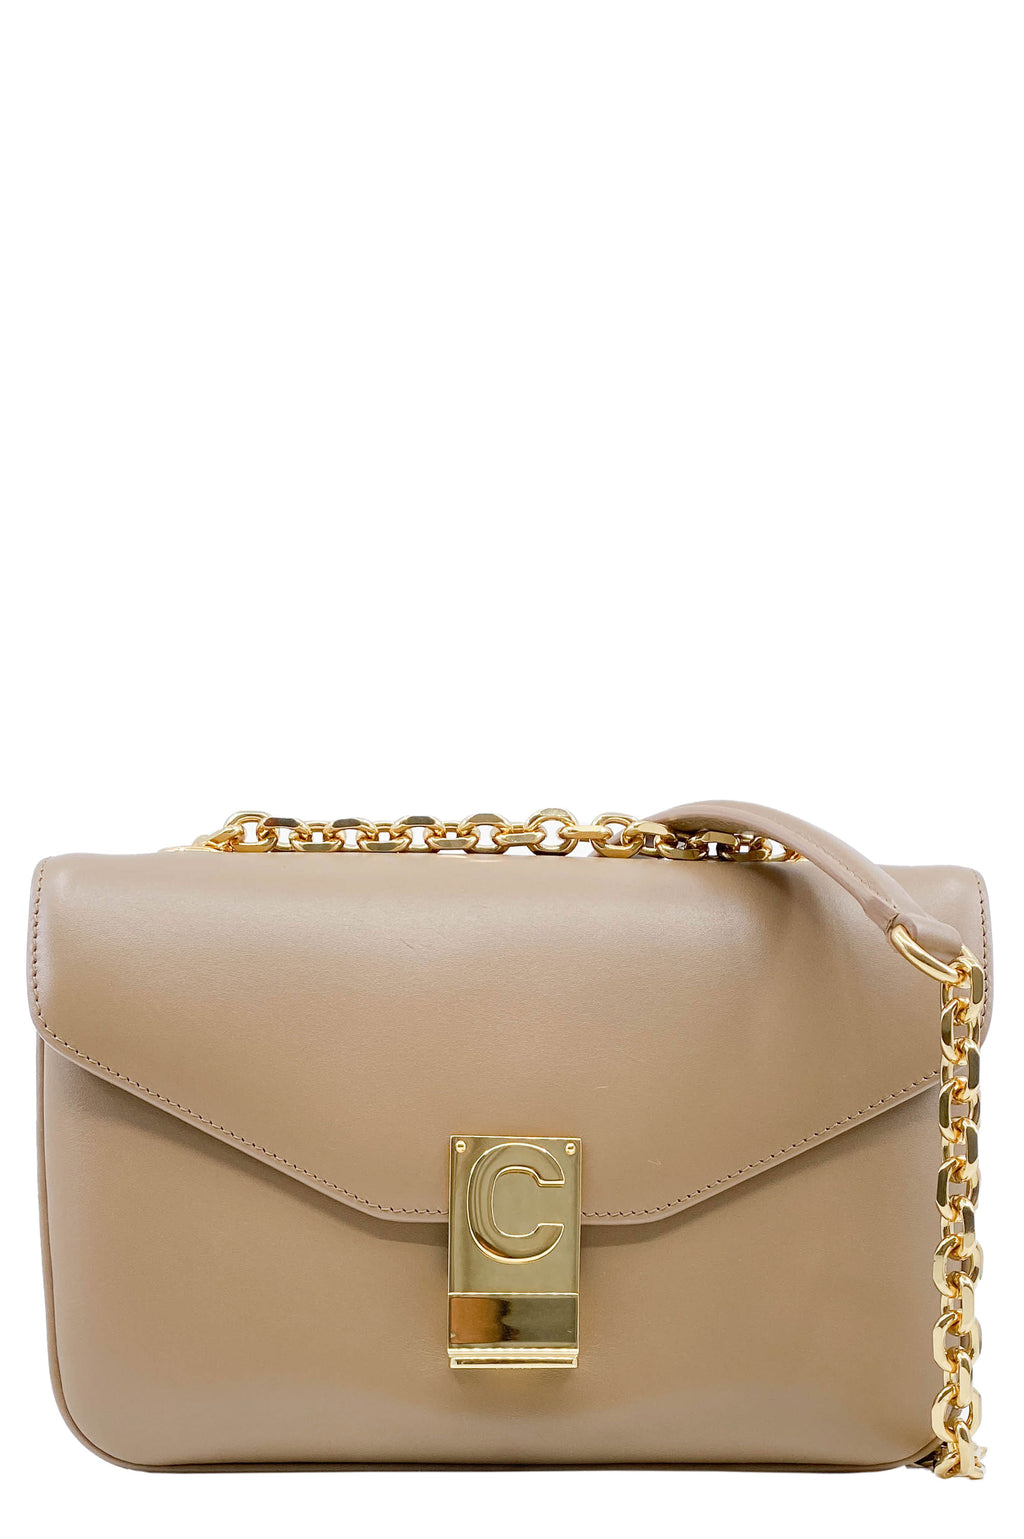 CELINE Bag 'Sac C' Medium Taupe